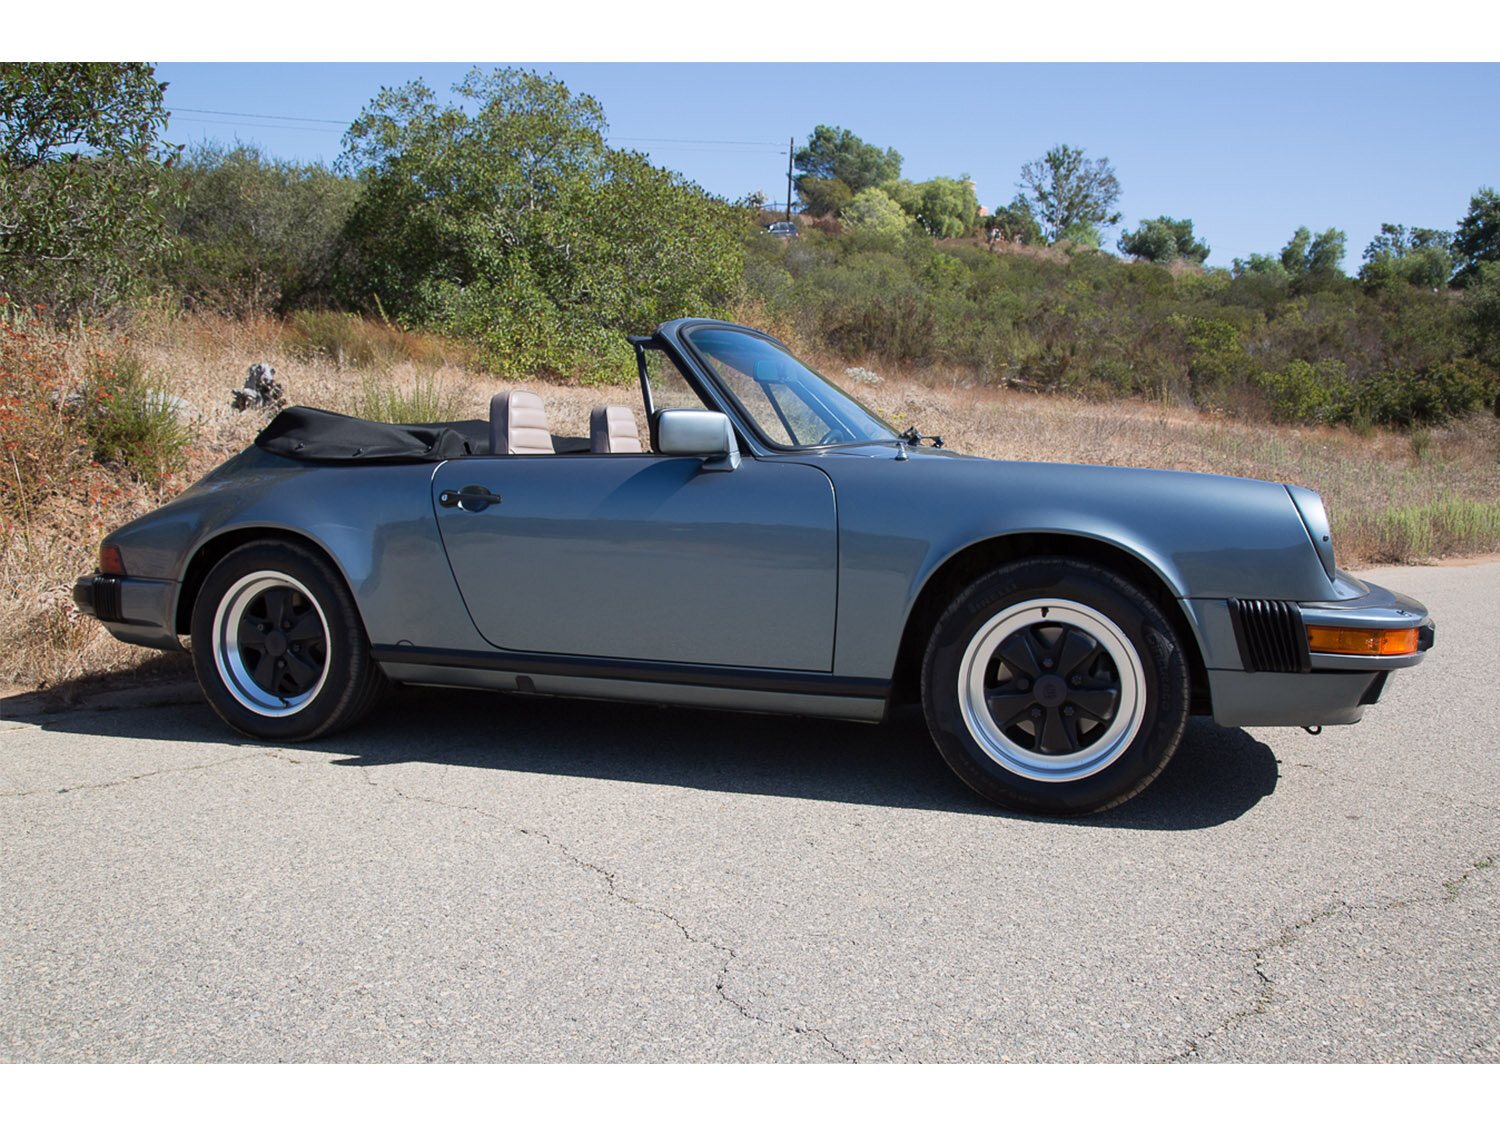 1984-carrera-cabriolet-slate-blue-911-sc-for-sale-makellos-classics_0001s_0000s_0030_1B7A6603.jpg